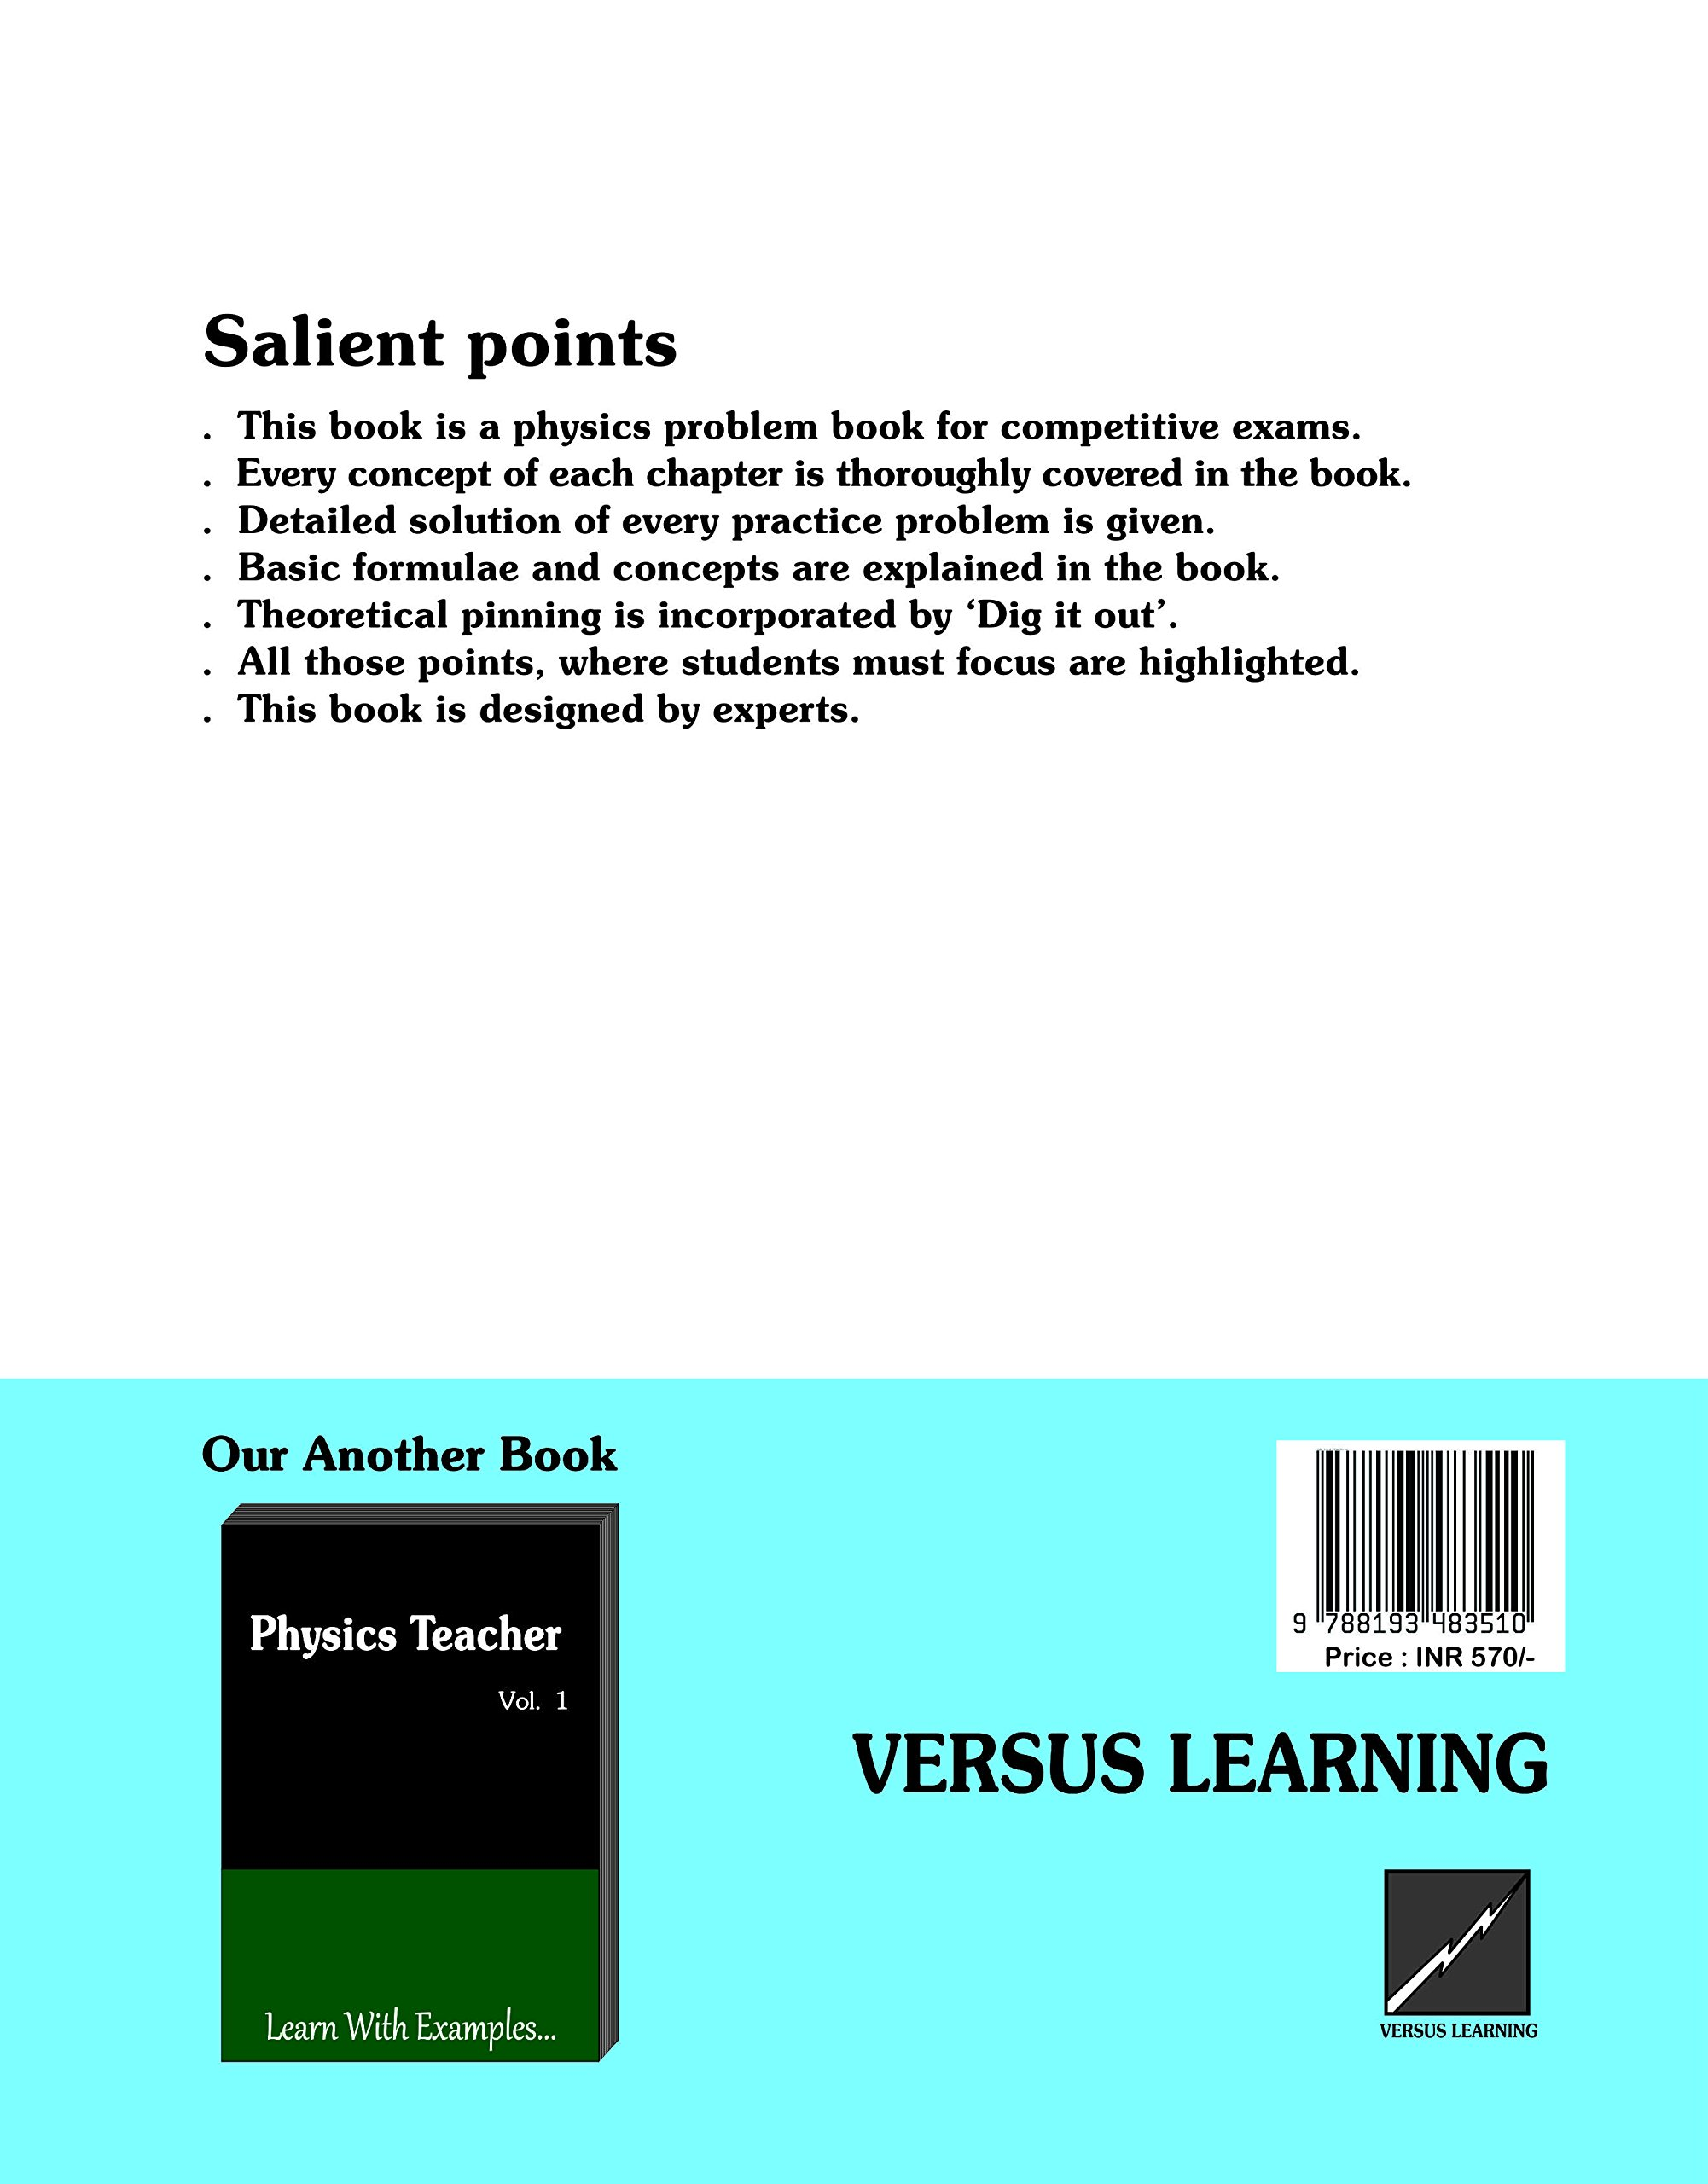 Buy physics teacher vol 2 book online at low prices in india buy physics teacher vol 2 book online at low prices in india physics teacher vol 2 reviews ratings amazon fandeluxe Image collections